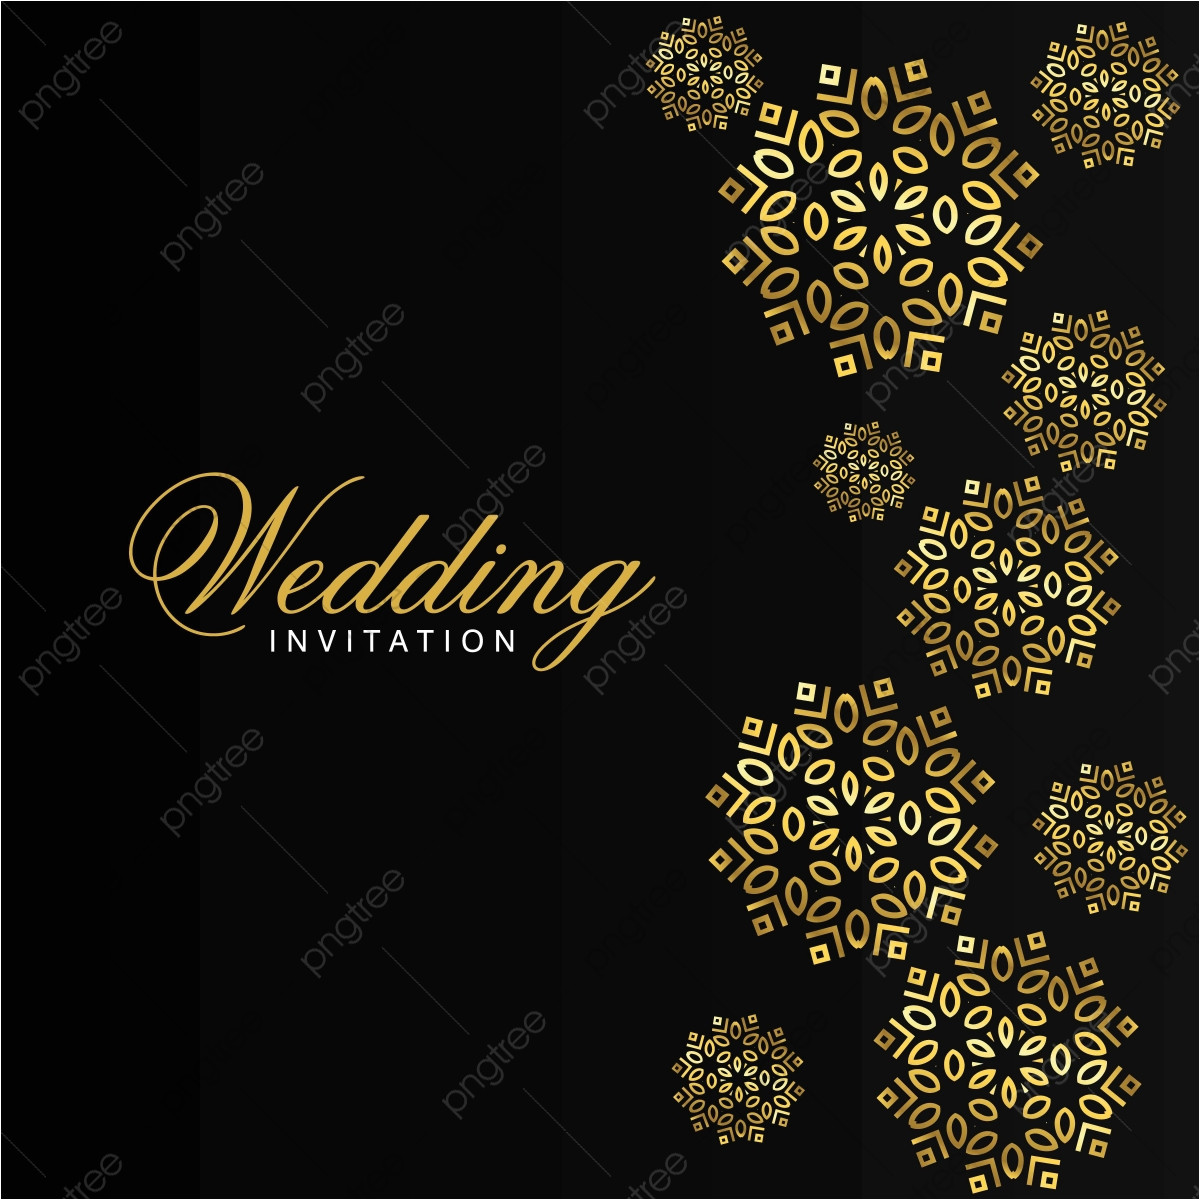 Wedding Card Background Designs Free Wedding Card with Creative Design and Elegent Style